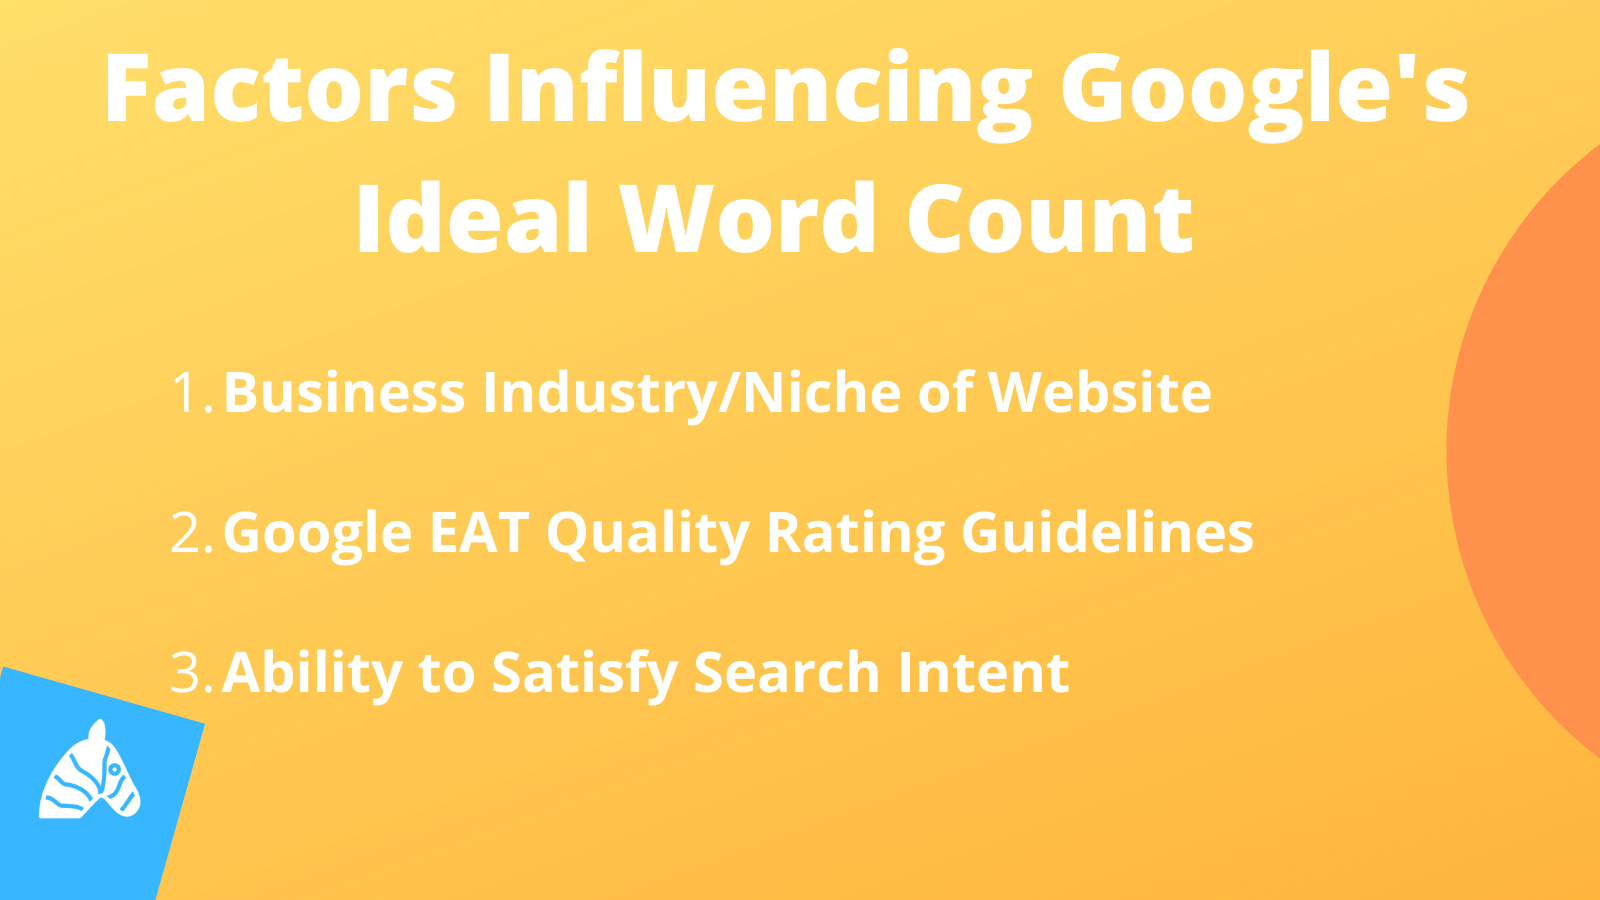 factors influencing the amount of words needed to rank on page 1 of Google